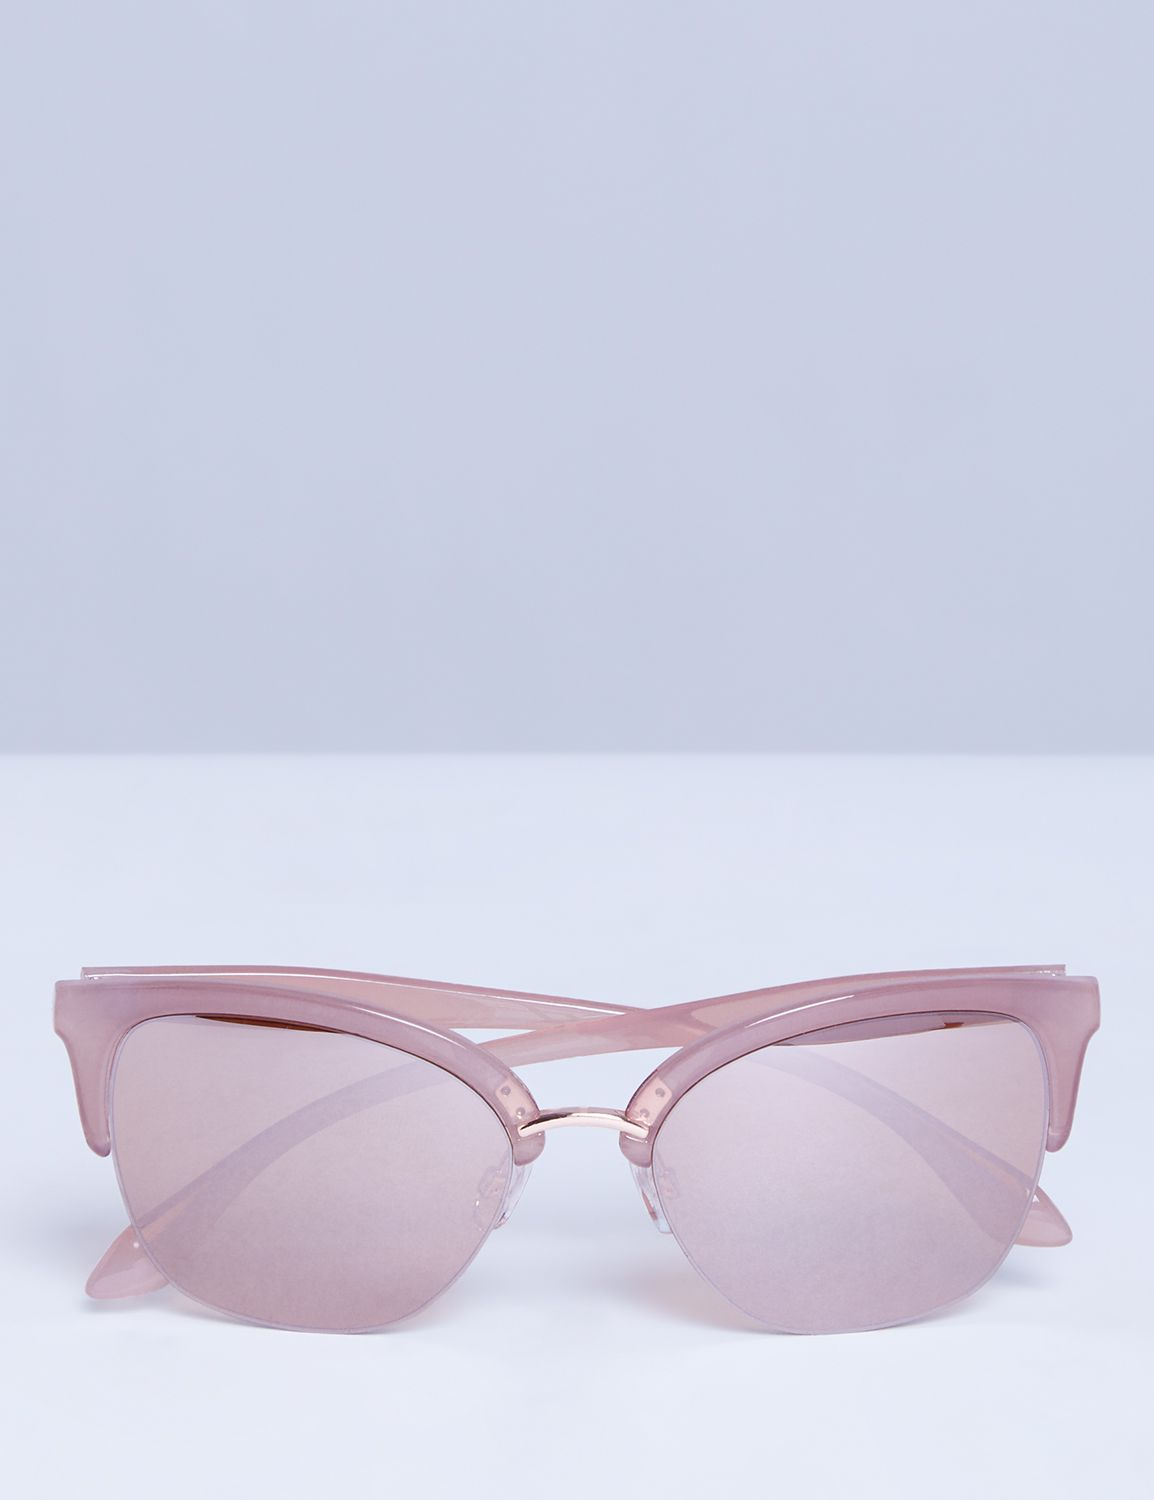 Lane Bryant Womens Half Frame Cateye Sunglasses ONESZ Rose Gold